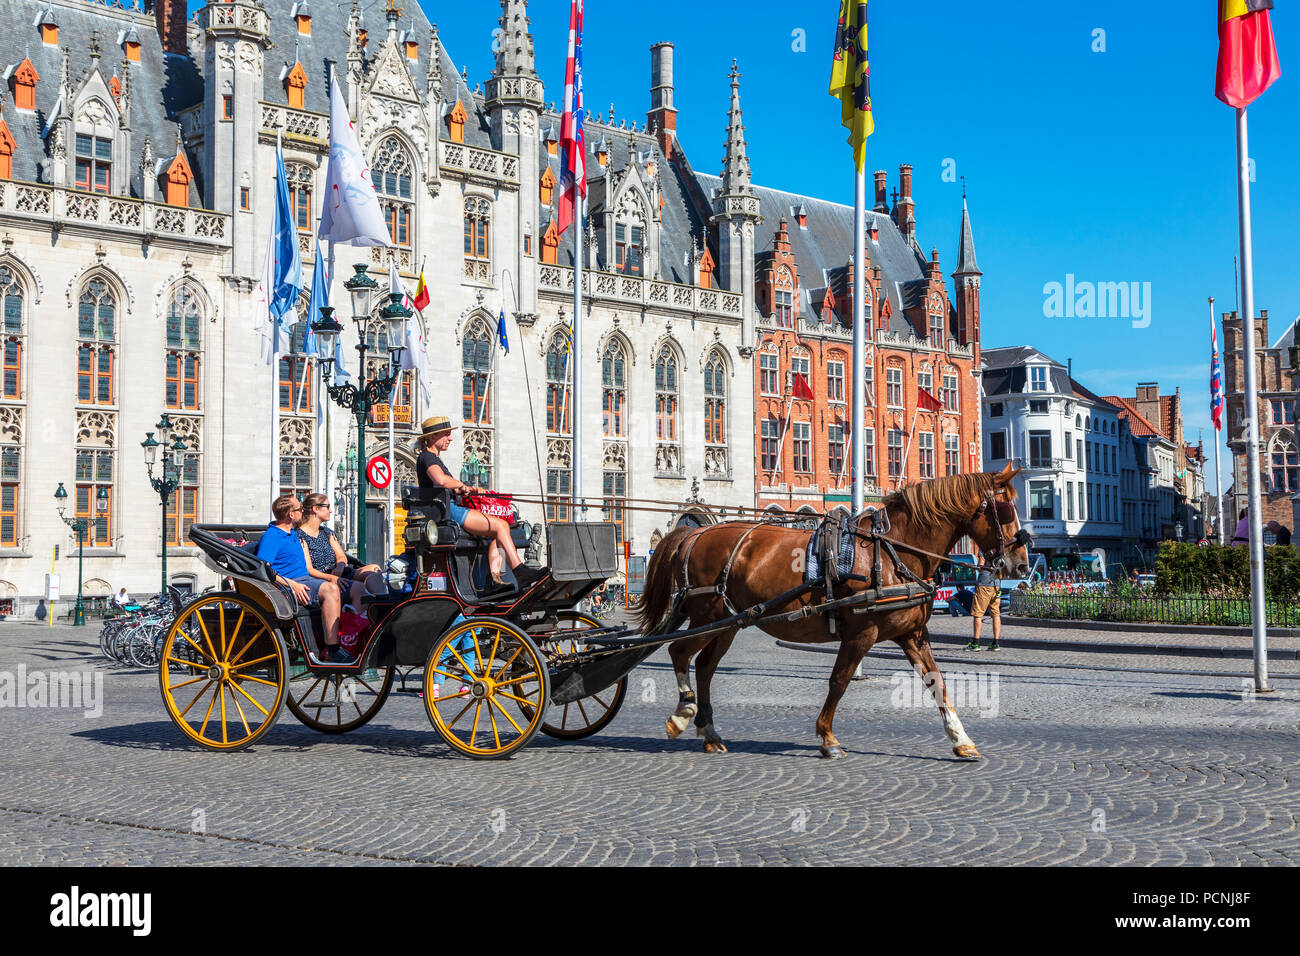 Tourists being taken on a city tour with a horse and trap, Markt Square, Bruges, Belgium - Stock Image